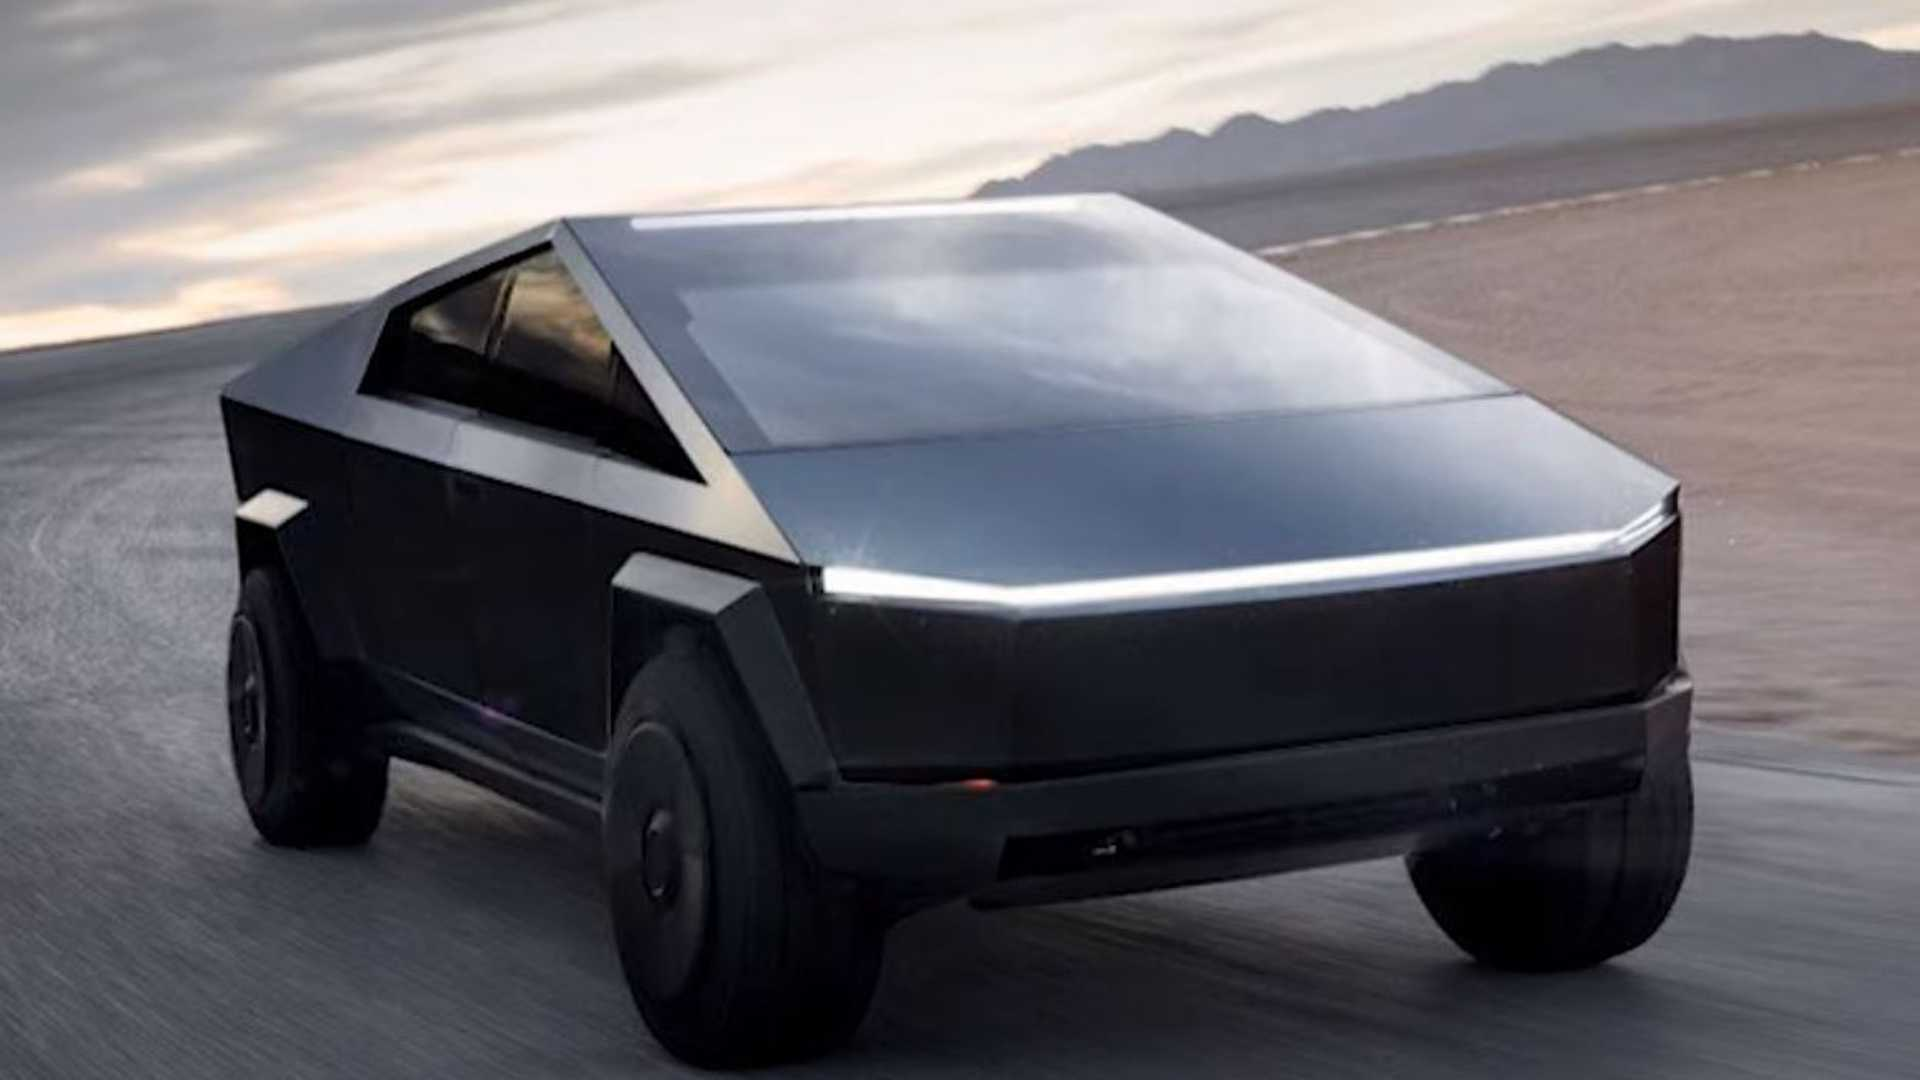 More Details On The Tesla Cybertruck's Revolutionary Design